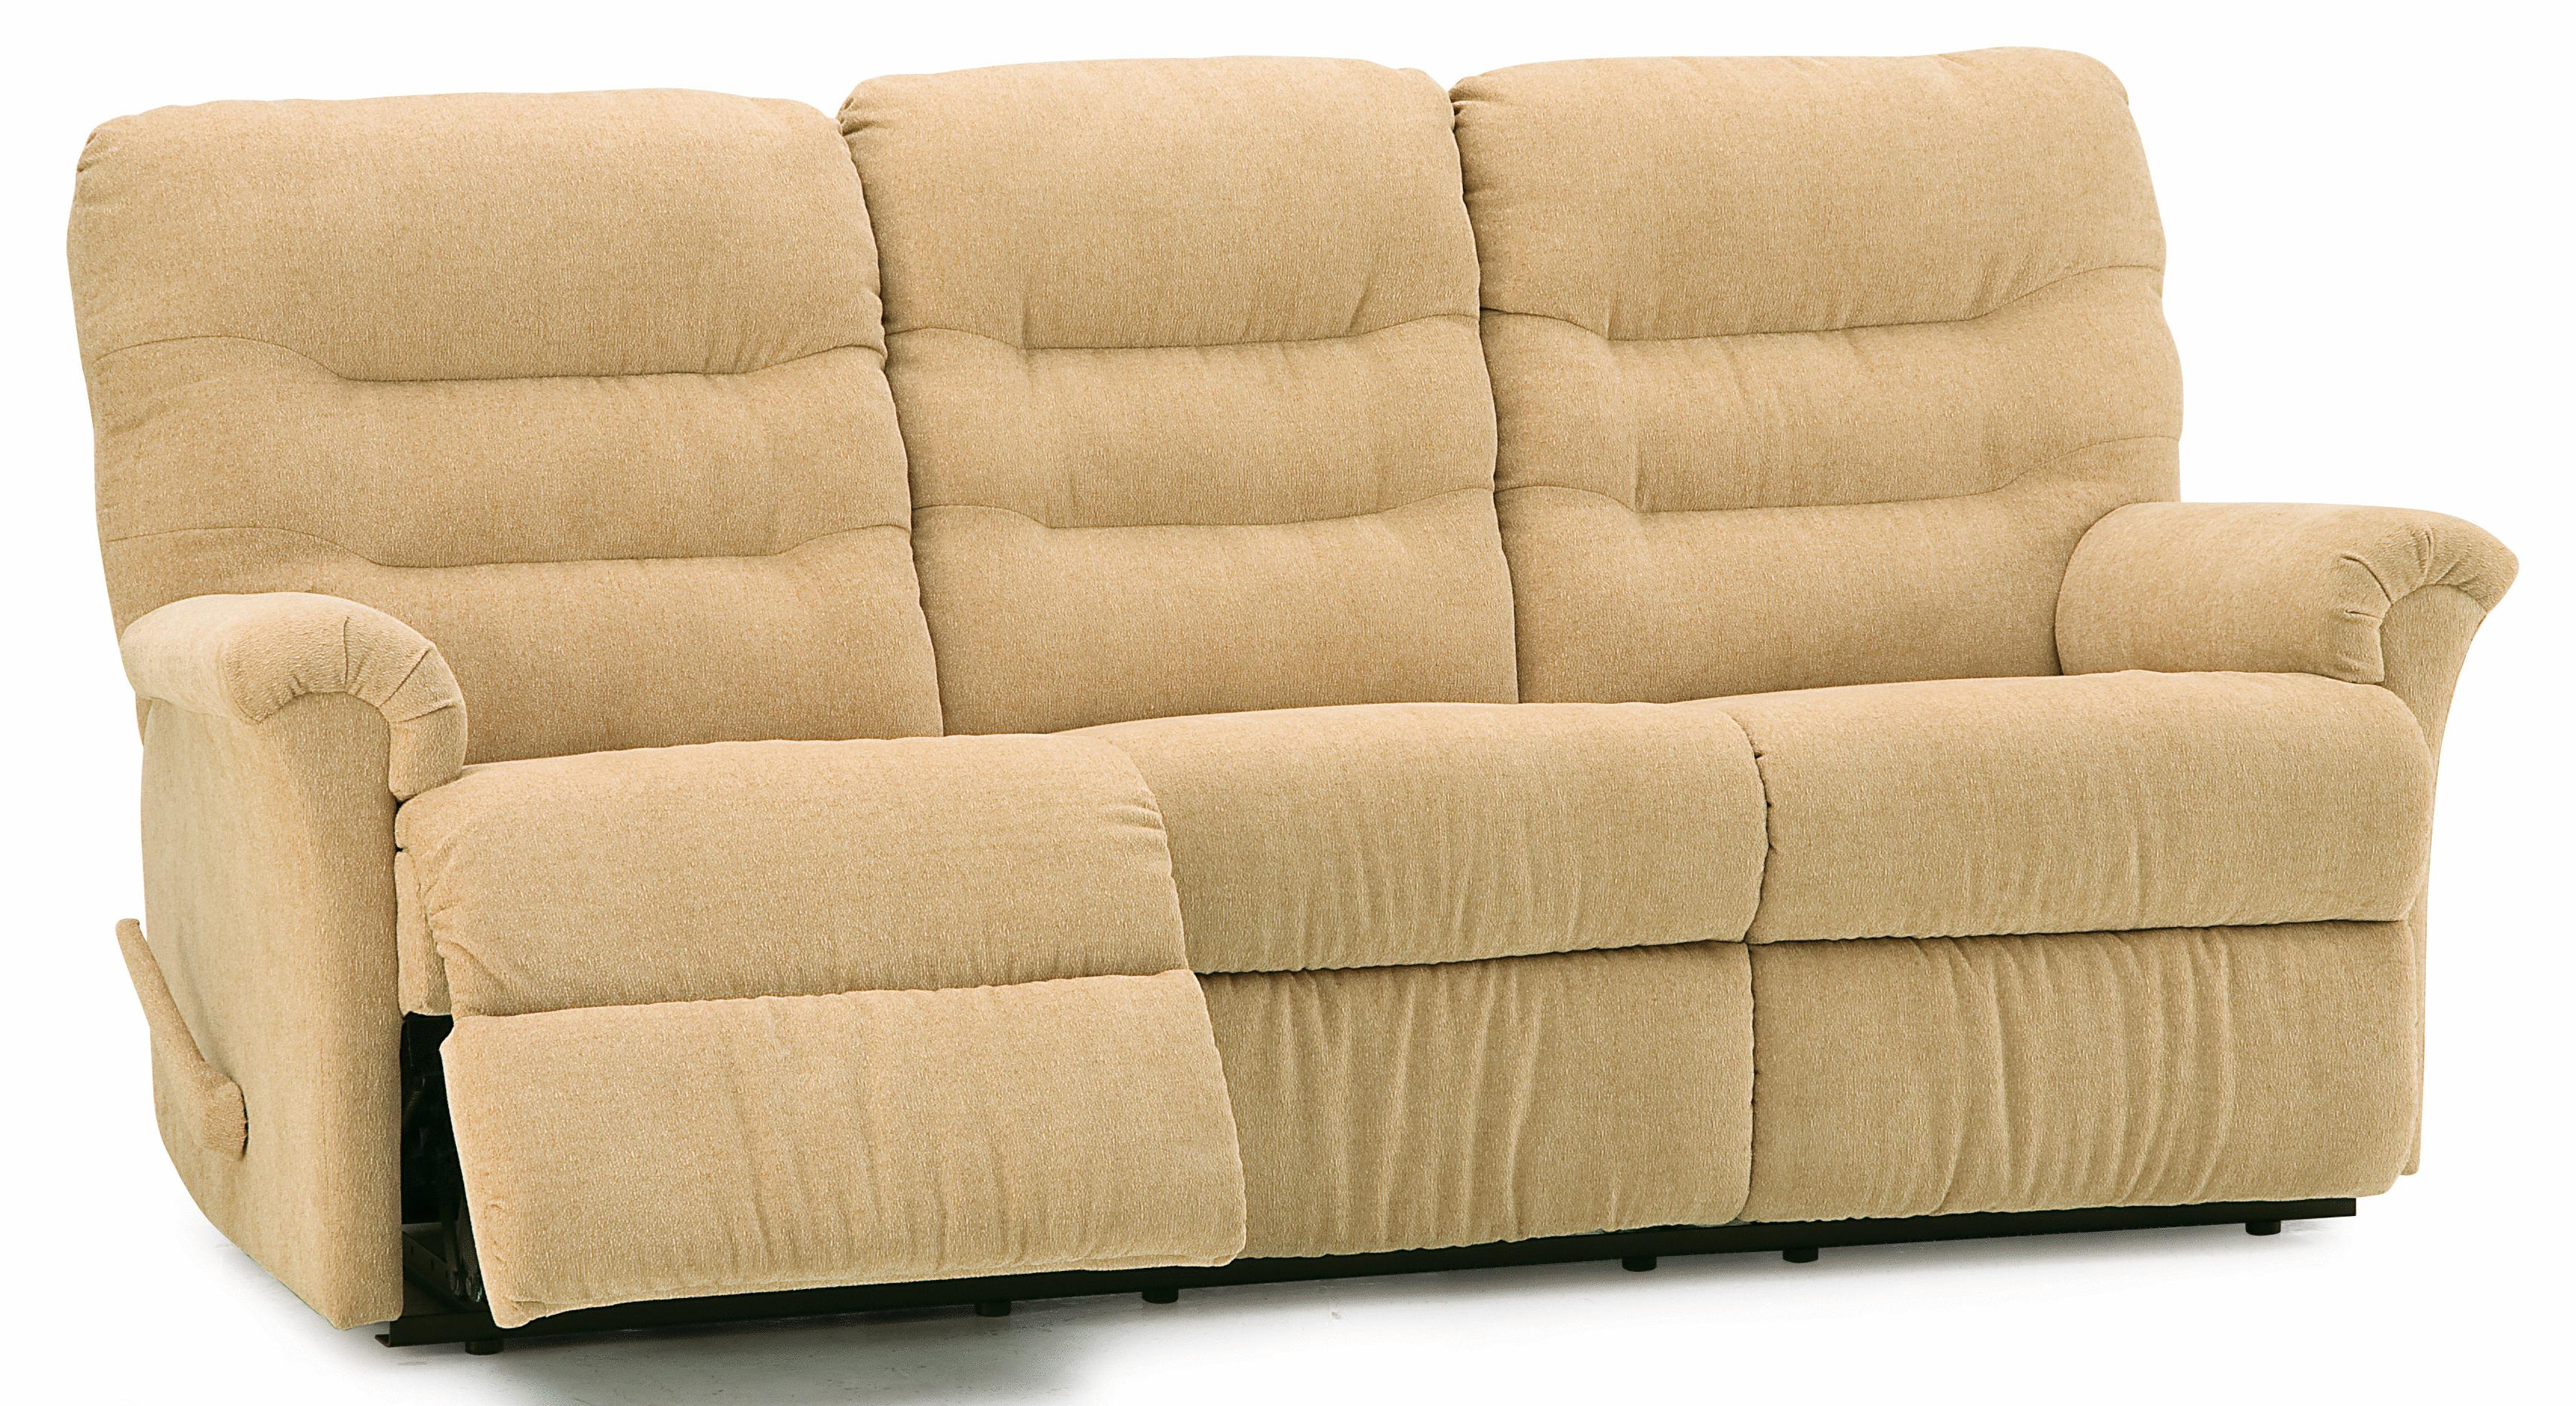 Mila Sofa Recliner with ChannelTufted Back  Rotmans